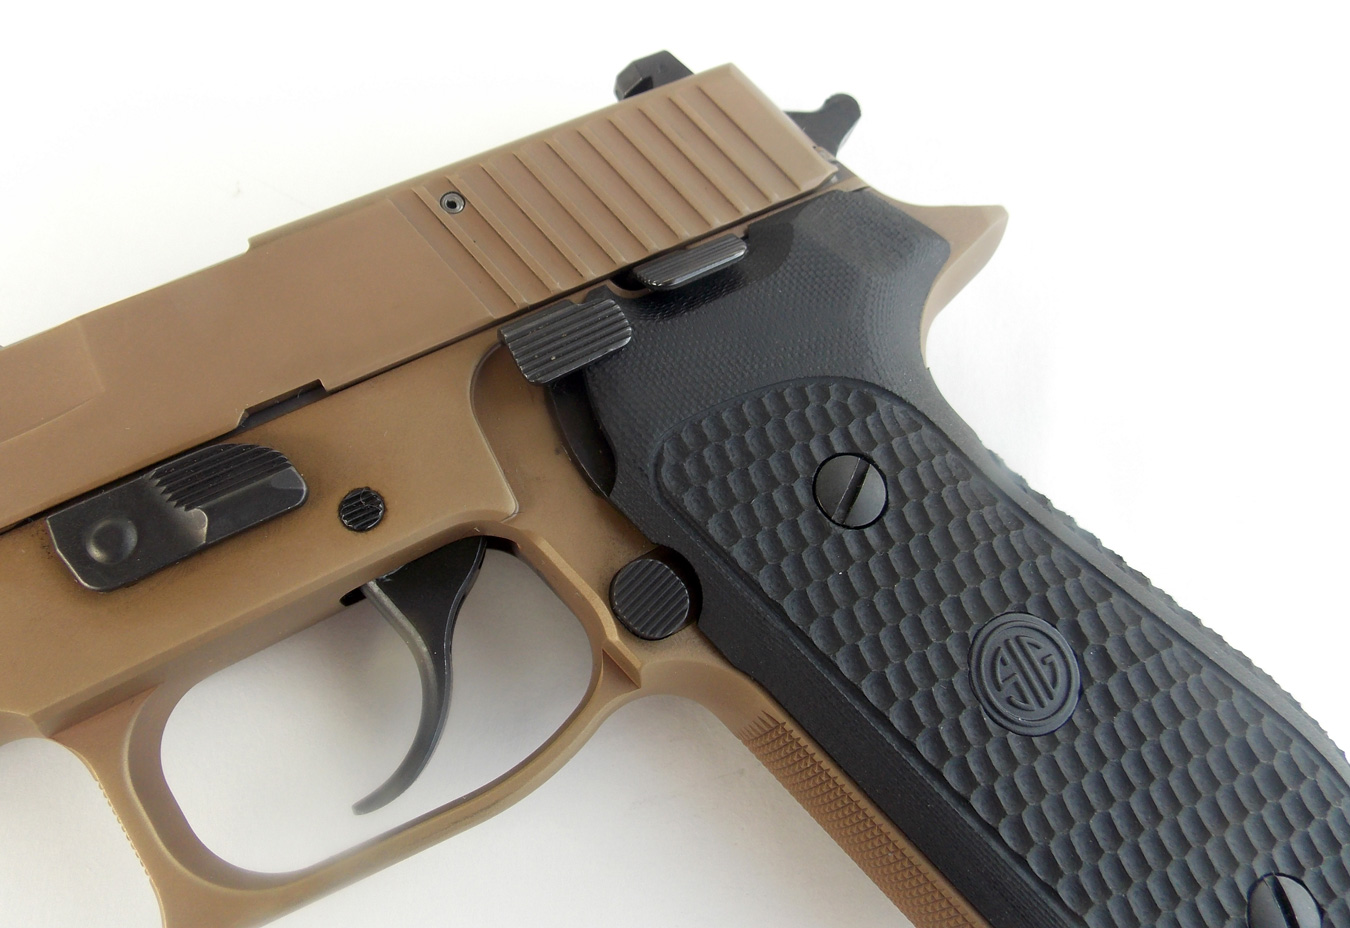 controls on the SIG Sauer Emperor Scorpion